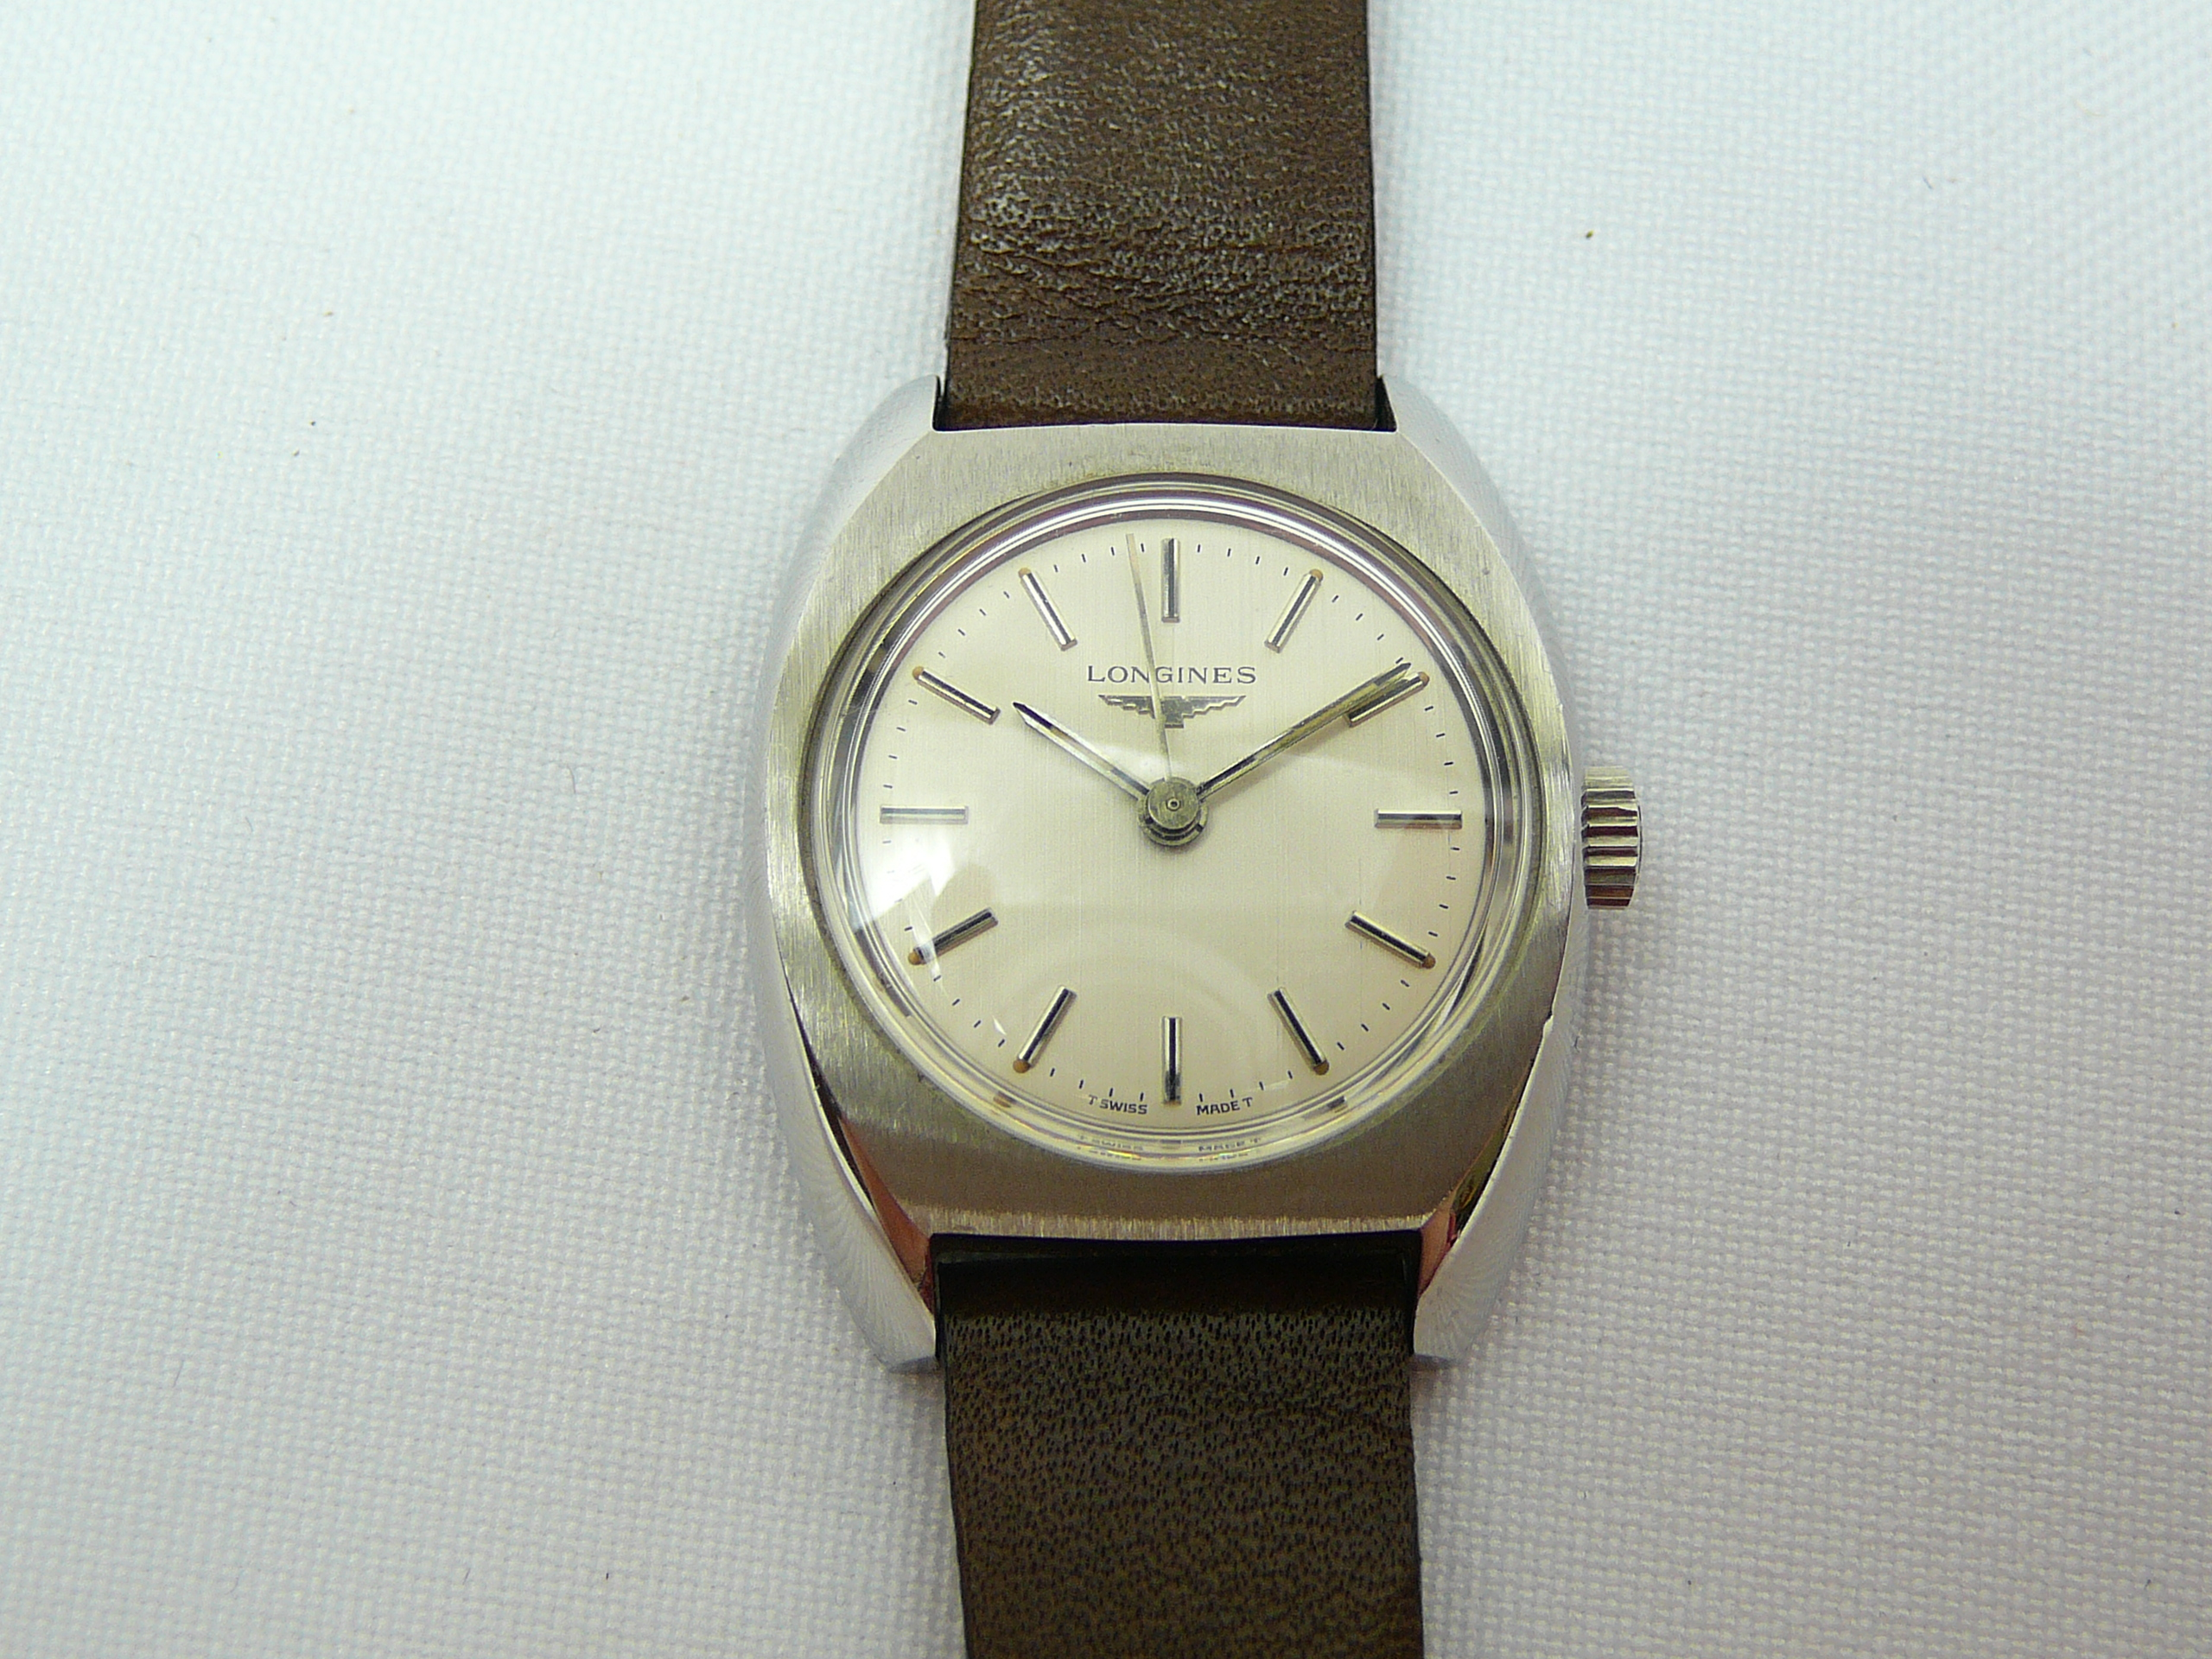 Ladies Vintage Longines Wrist Watch - Image 2 of 3